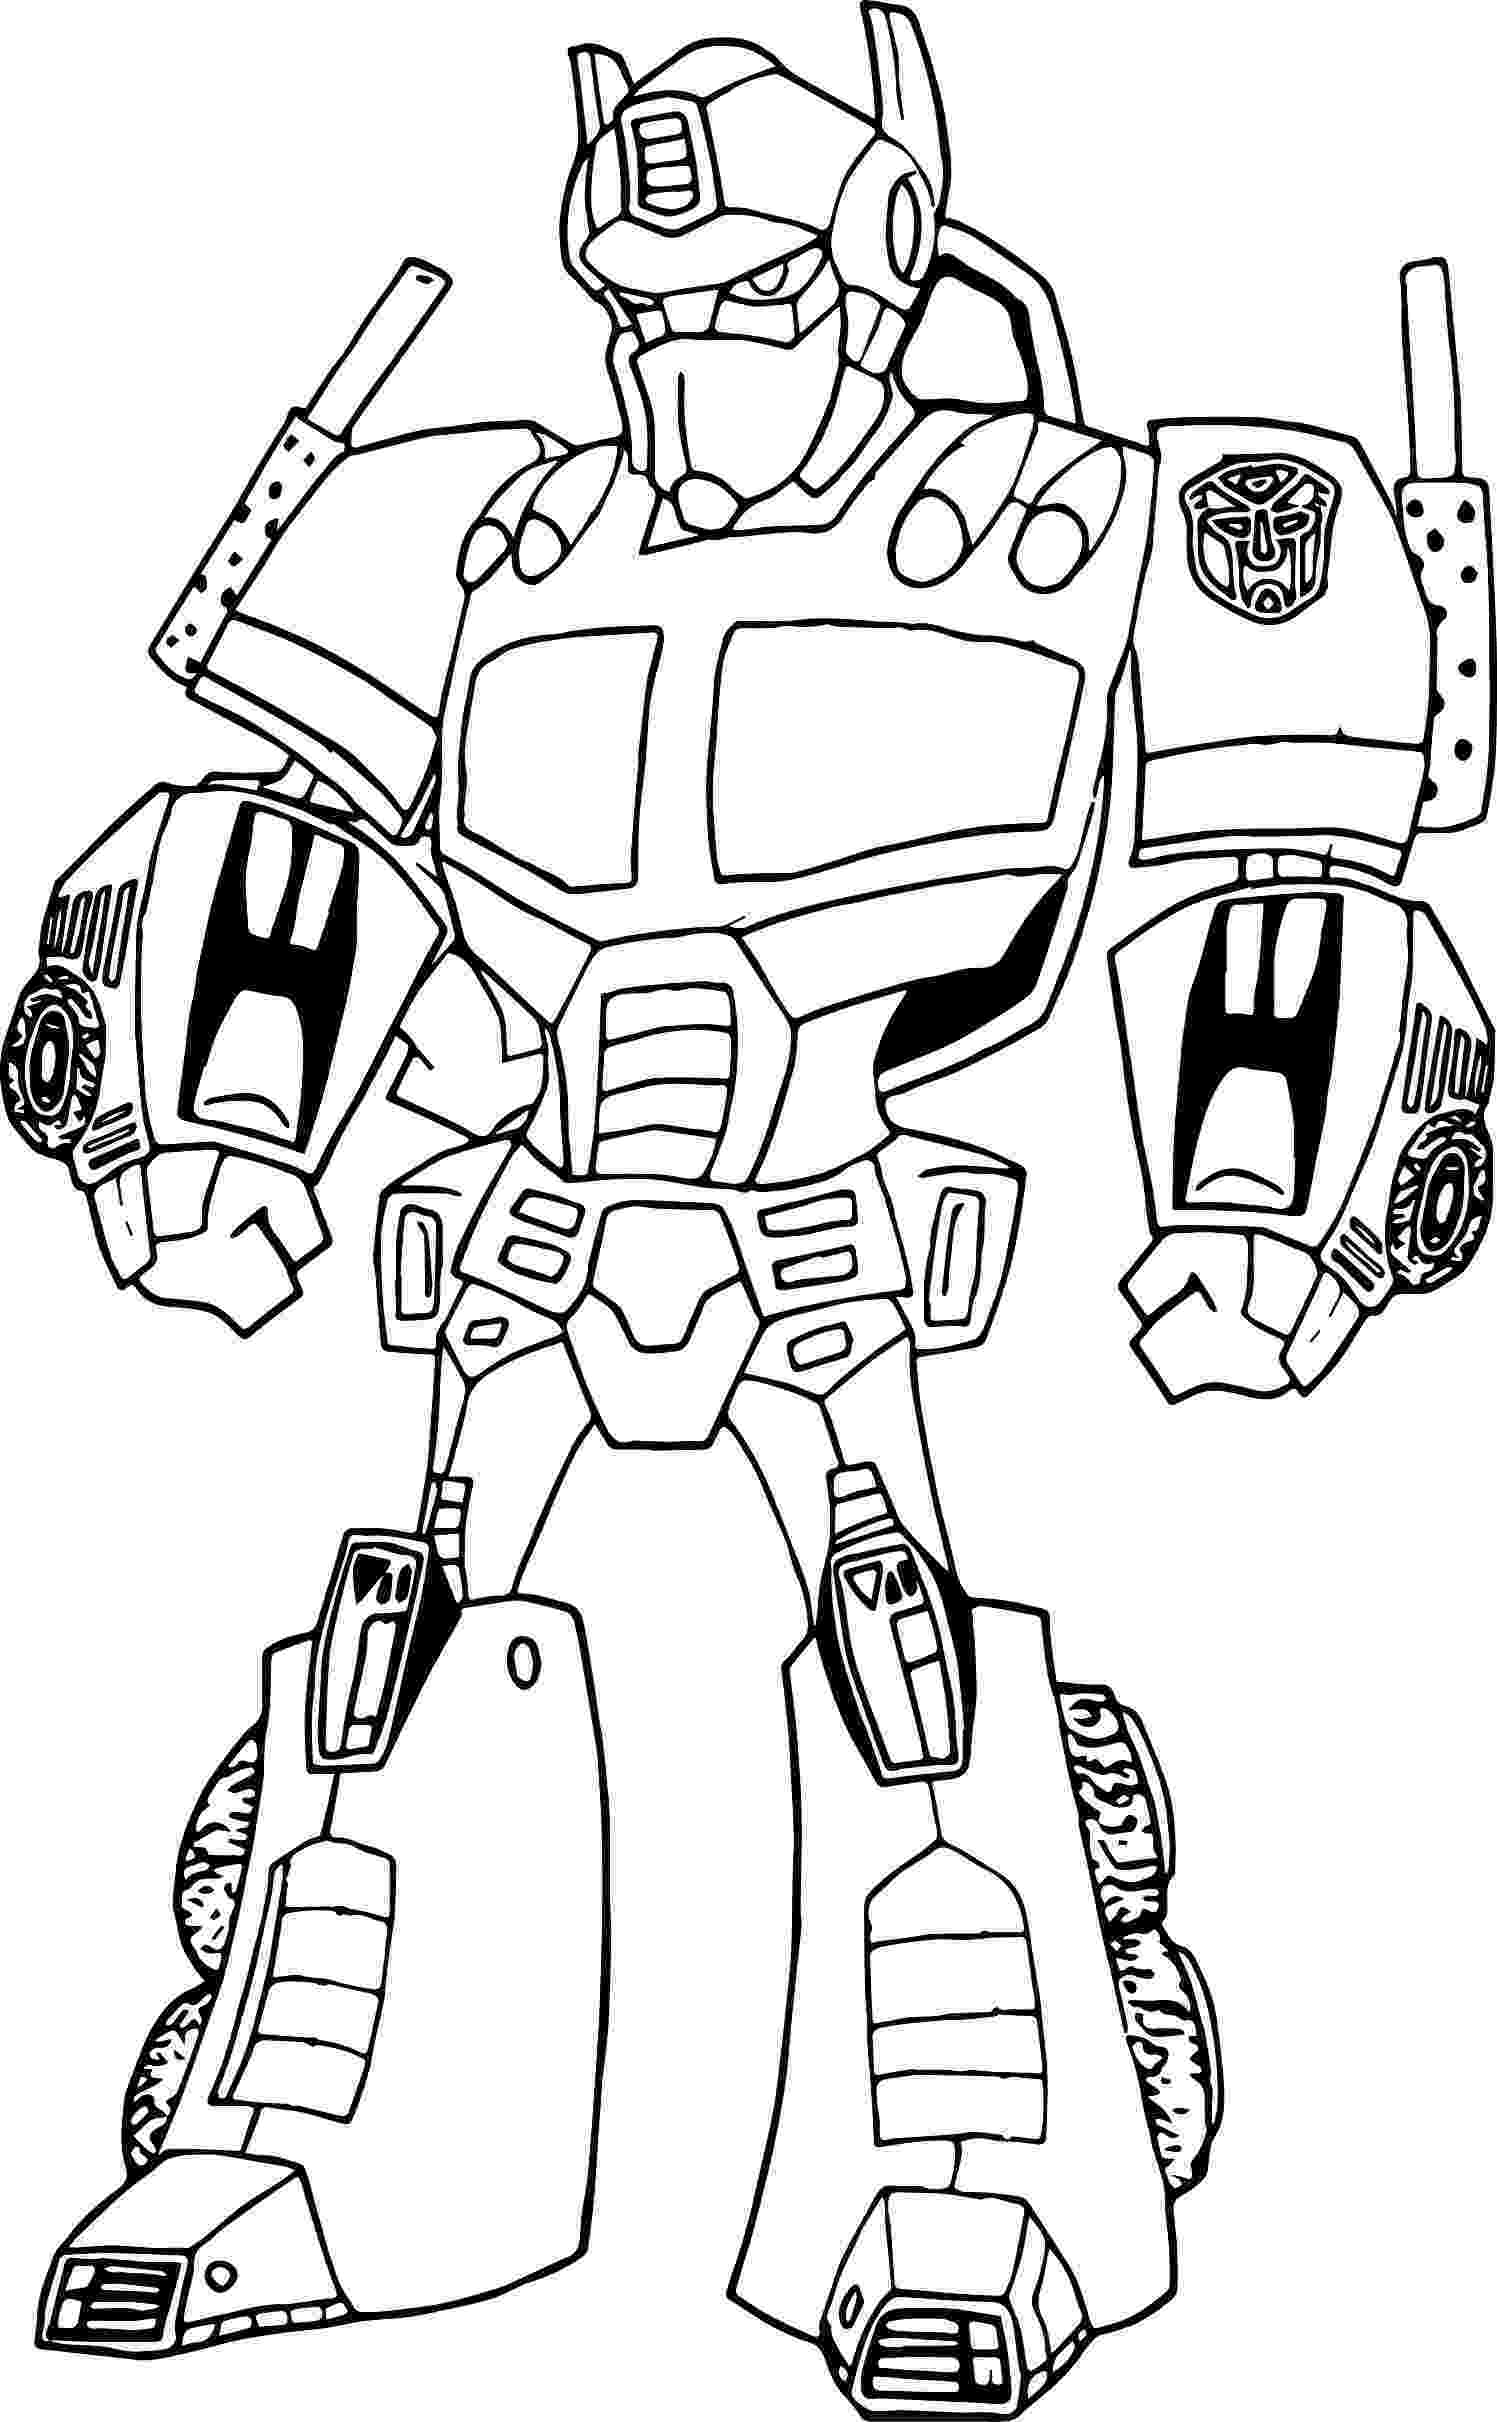 colouring pages for real steel real steel atom drawing at getdrawings free download steel colouring pages real for 1 1